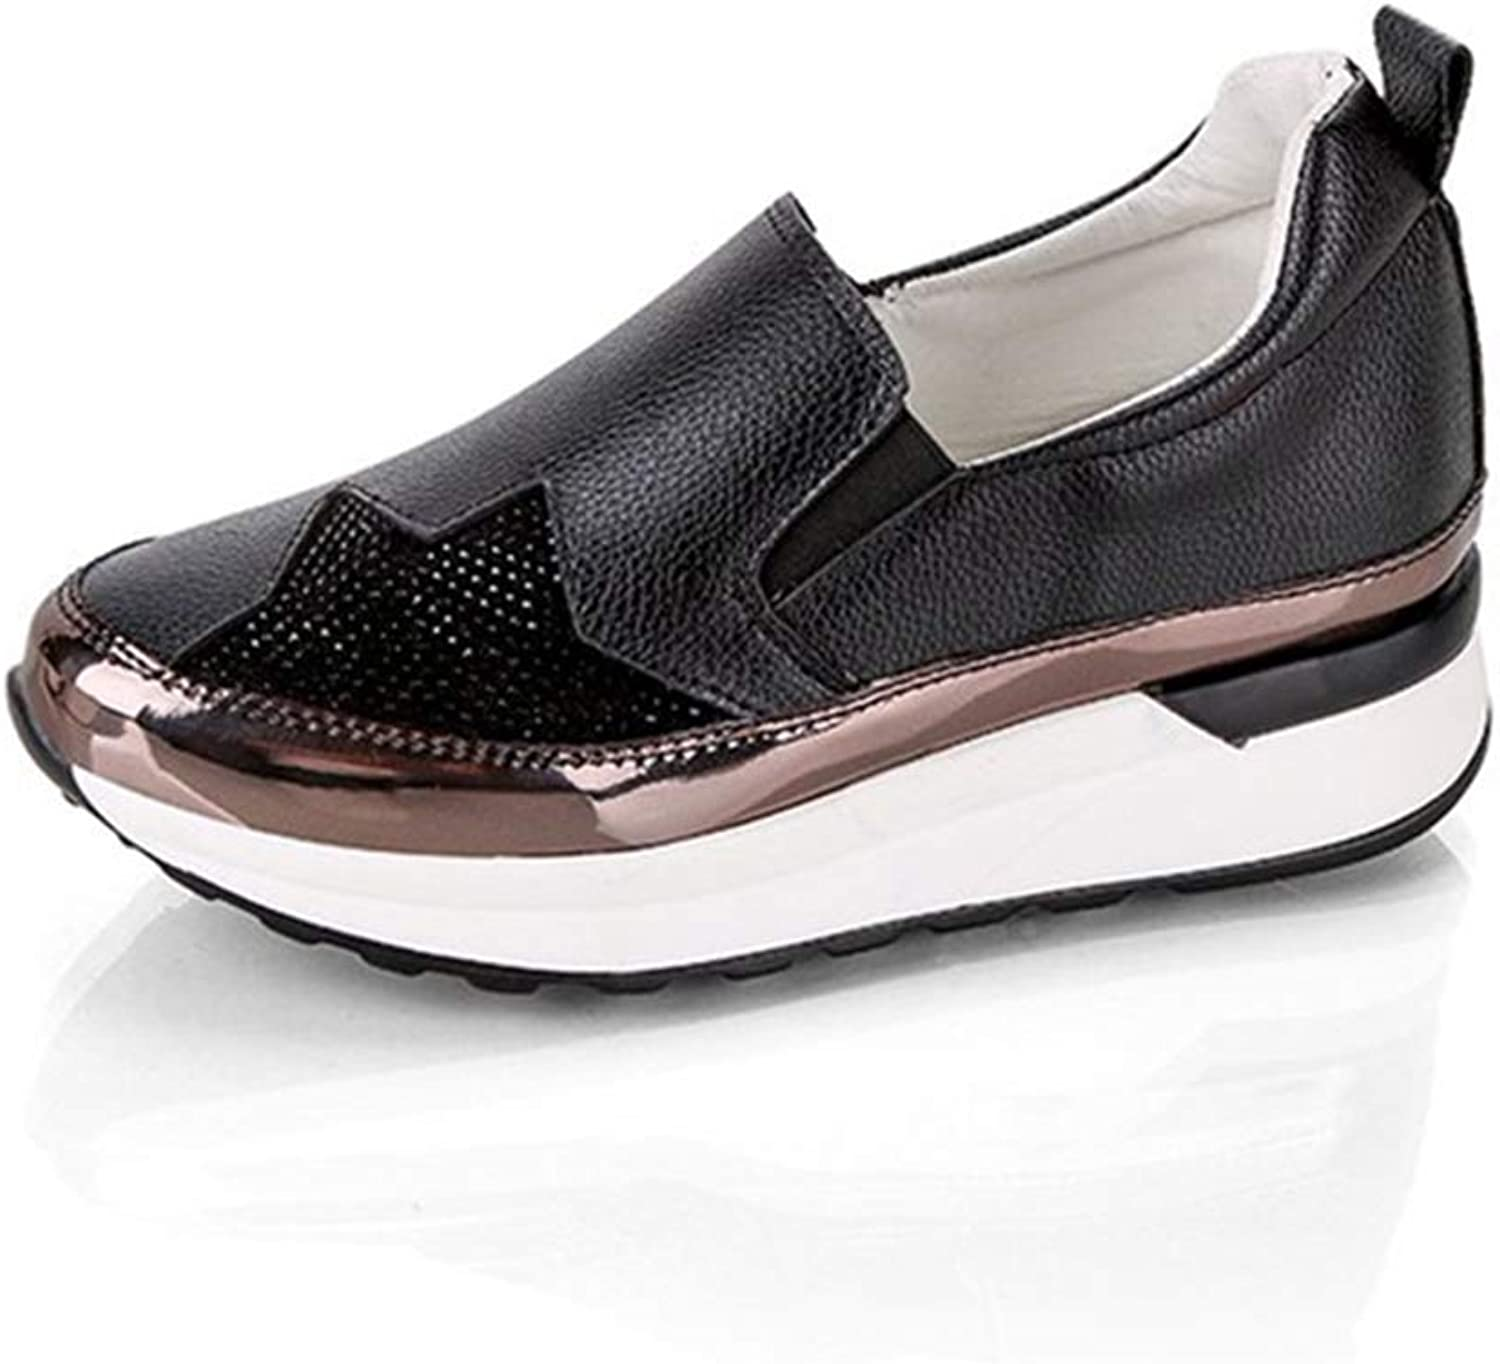 JOYBI Women Fashion Flats Loafers shoes PU Leather Slip On Comfortable Round Toe Casual Walking Sneakers